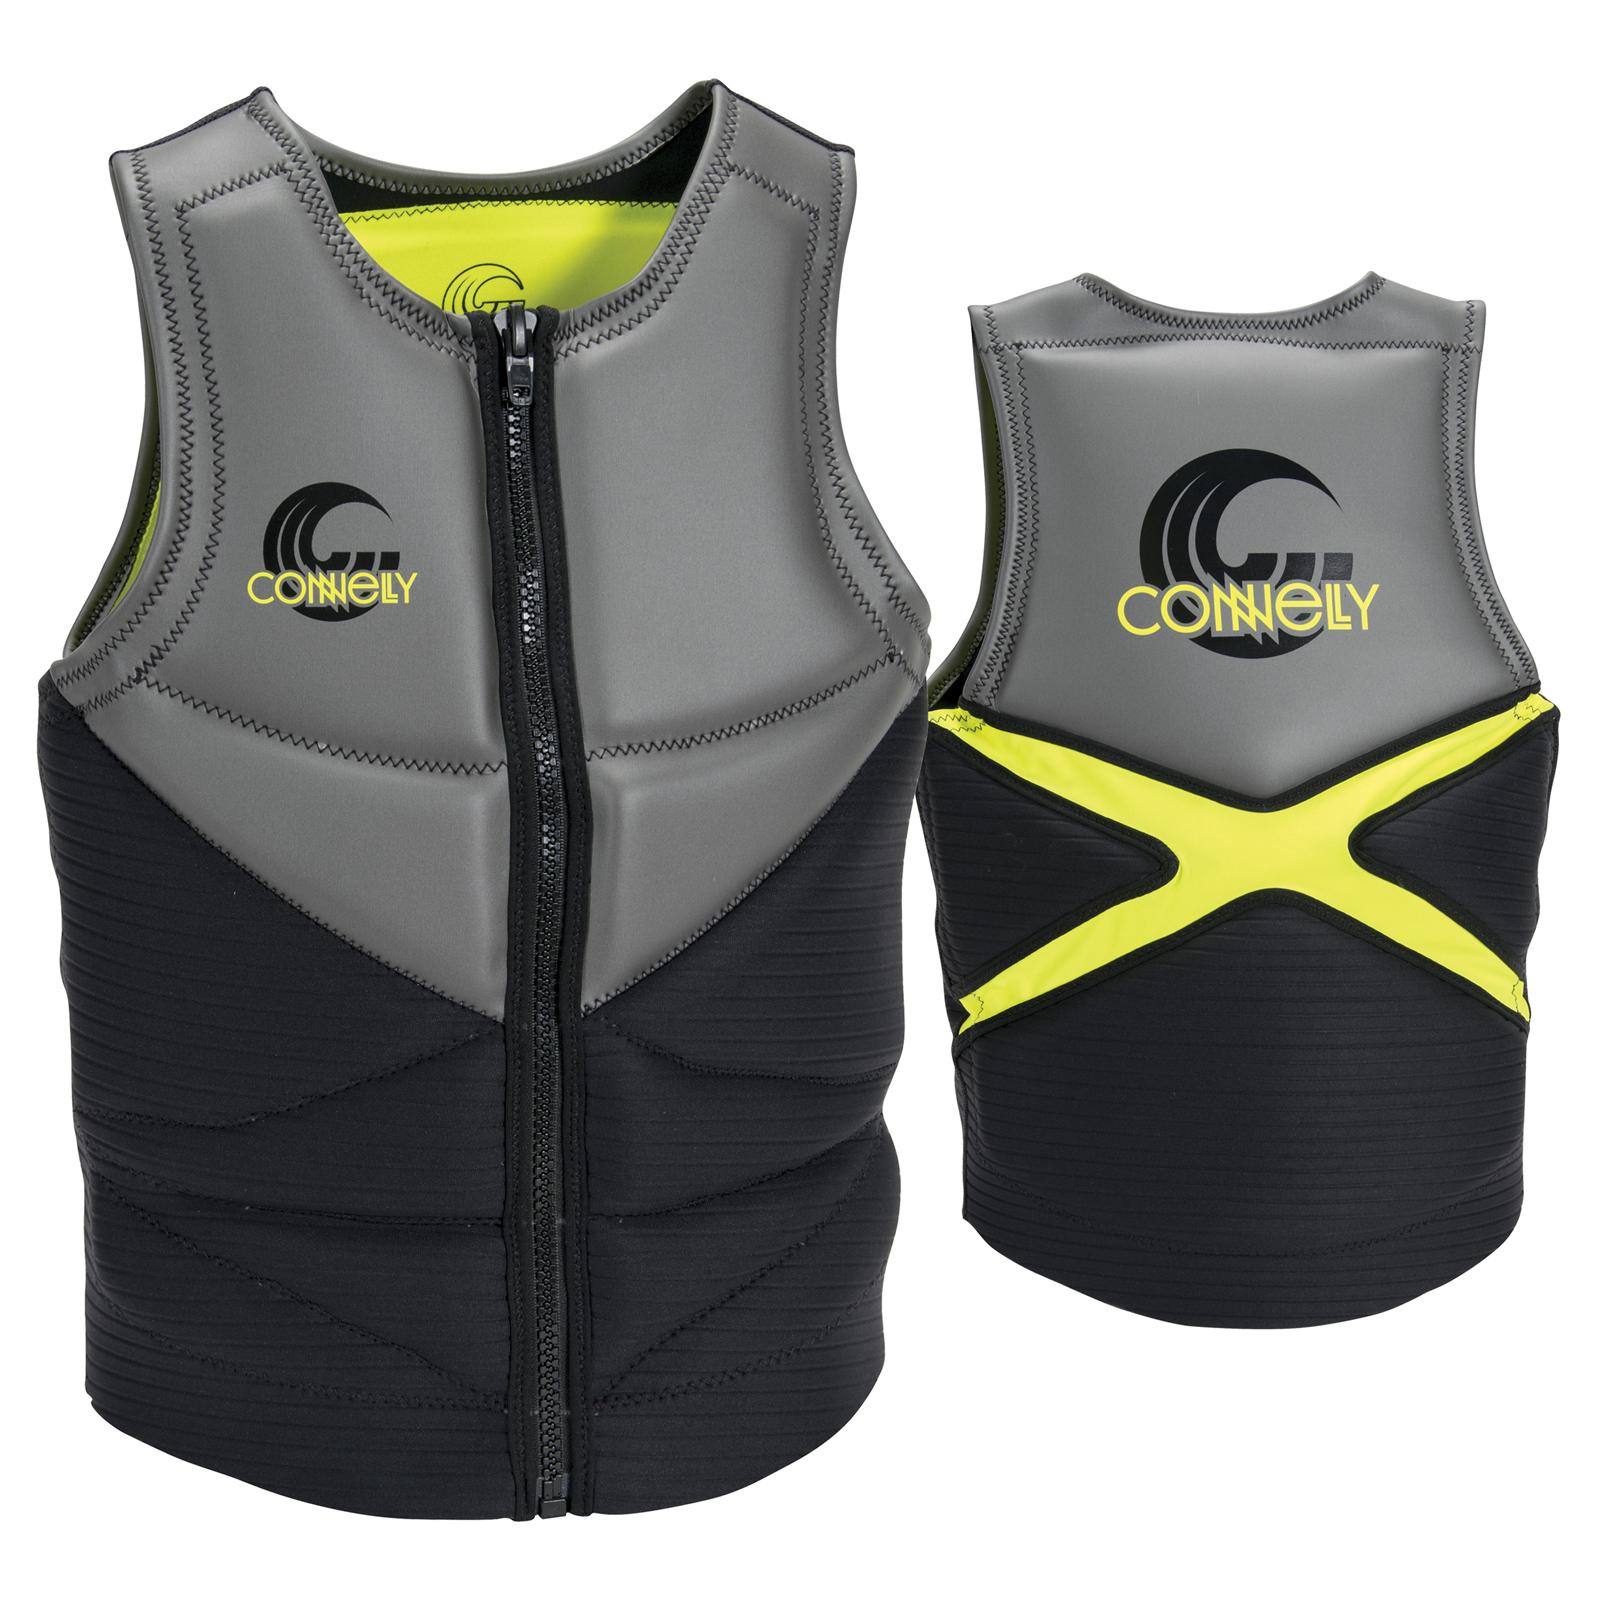 TEAM NEO IMPACT VEST CONNELLY 2018